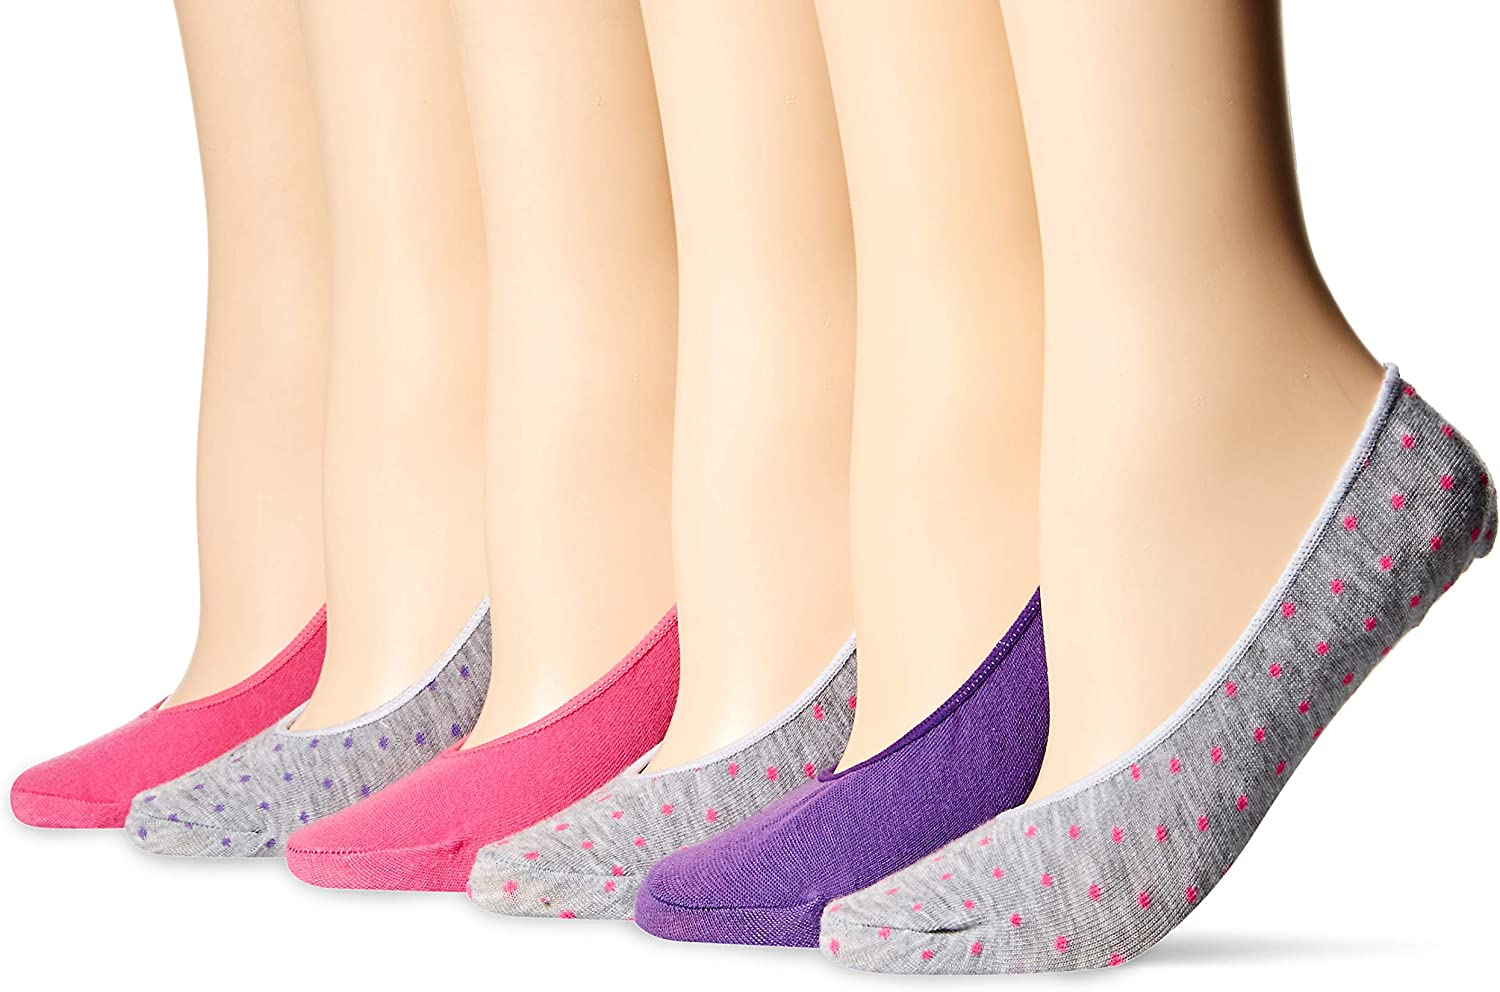 Hanes womens X-temp Lightweight Invisible Liner Socks 6-pack